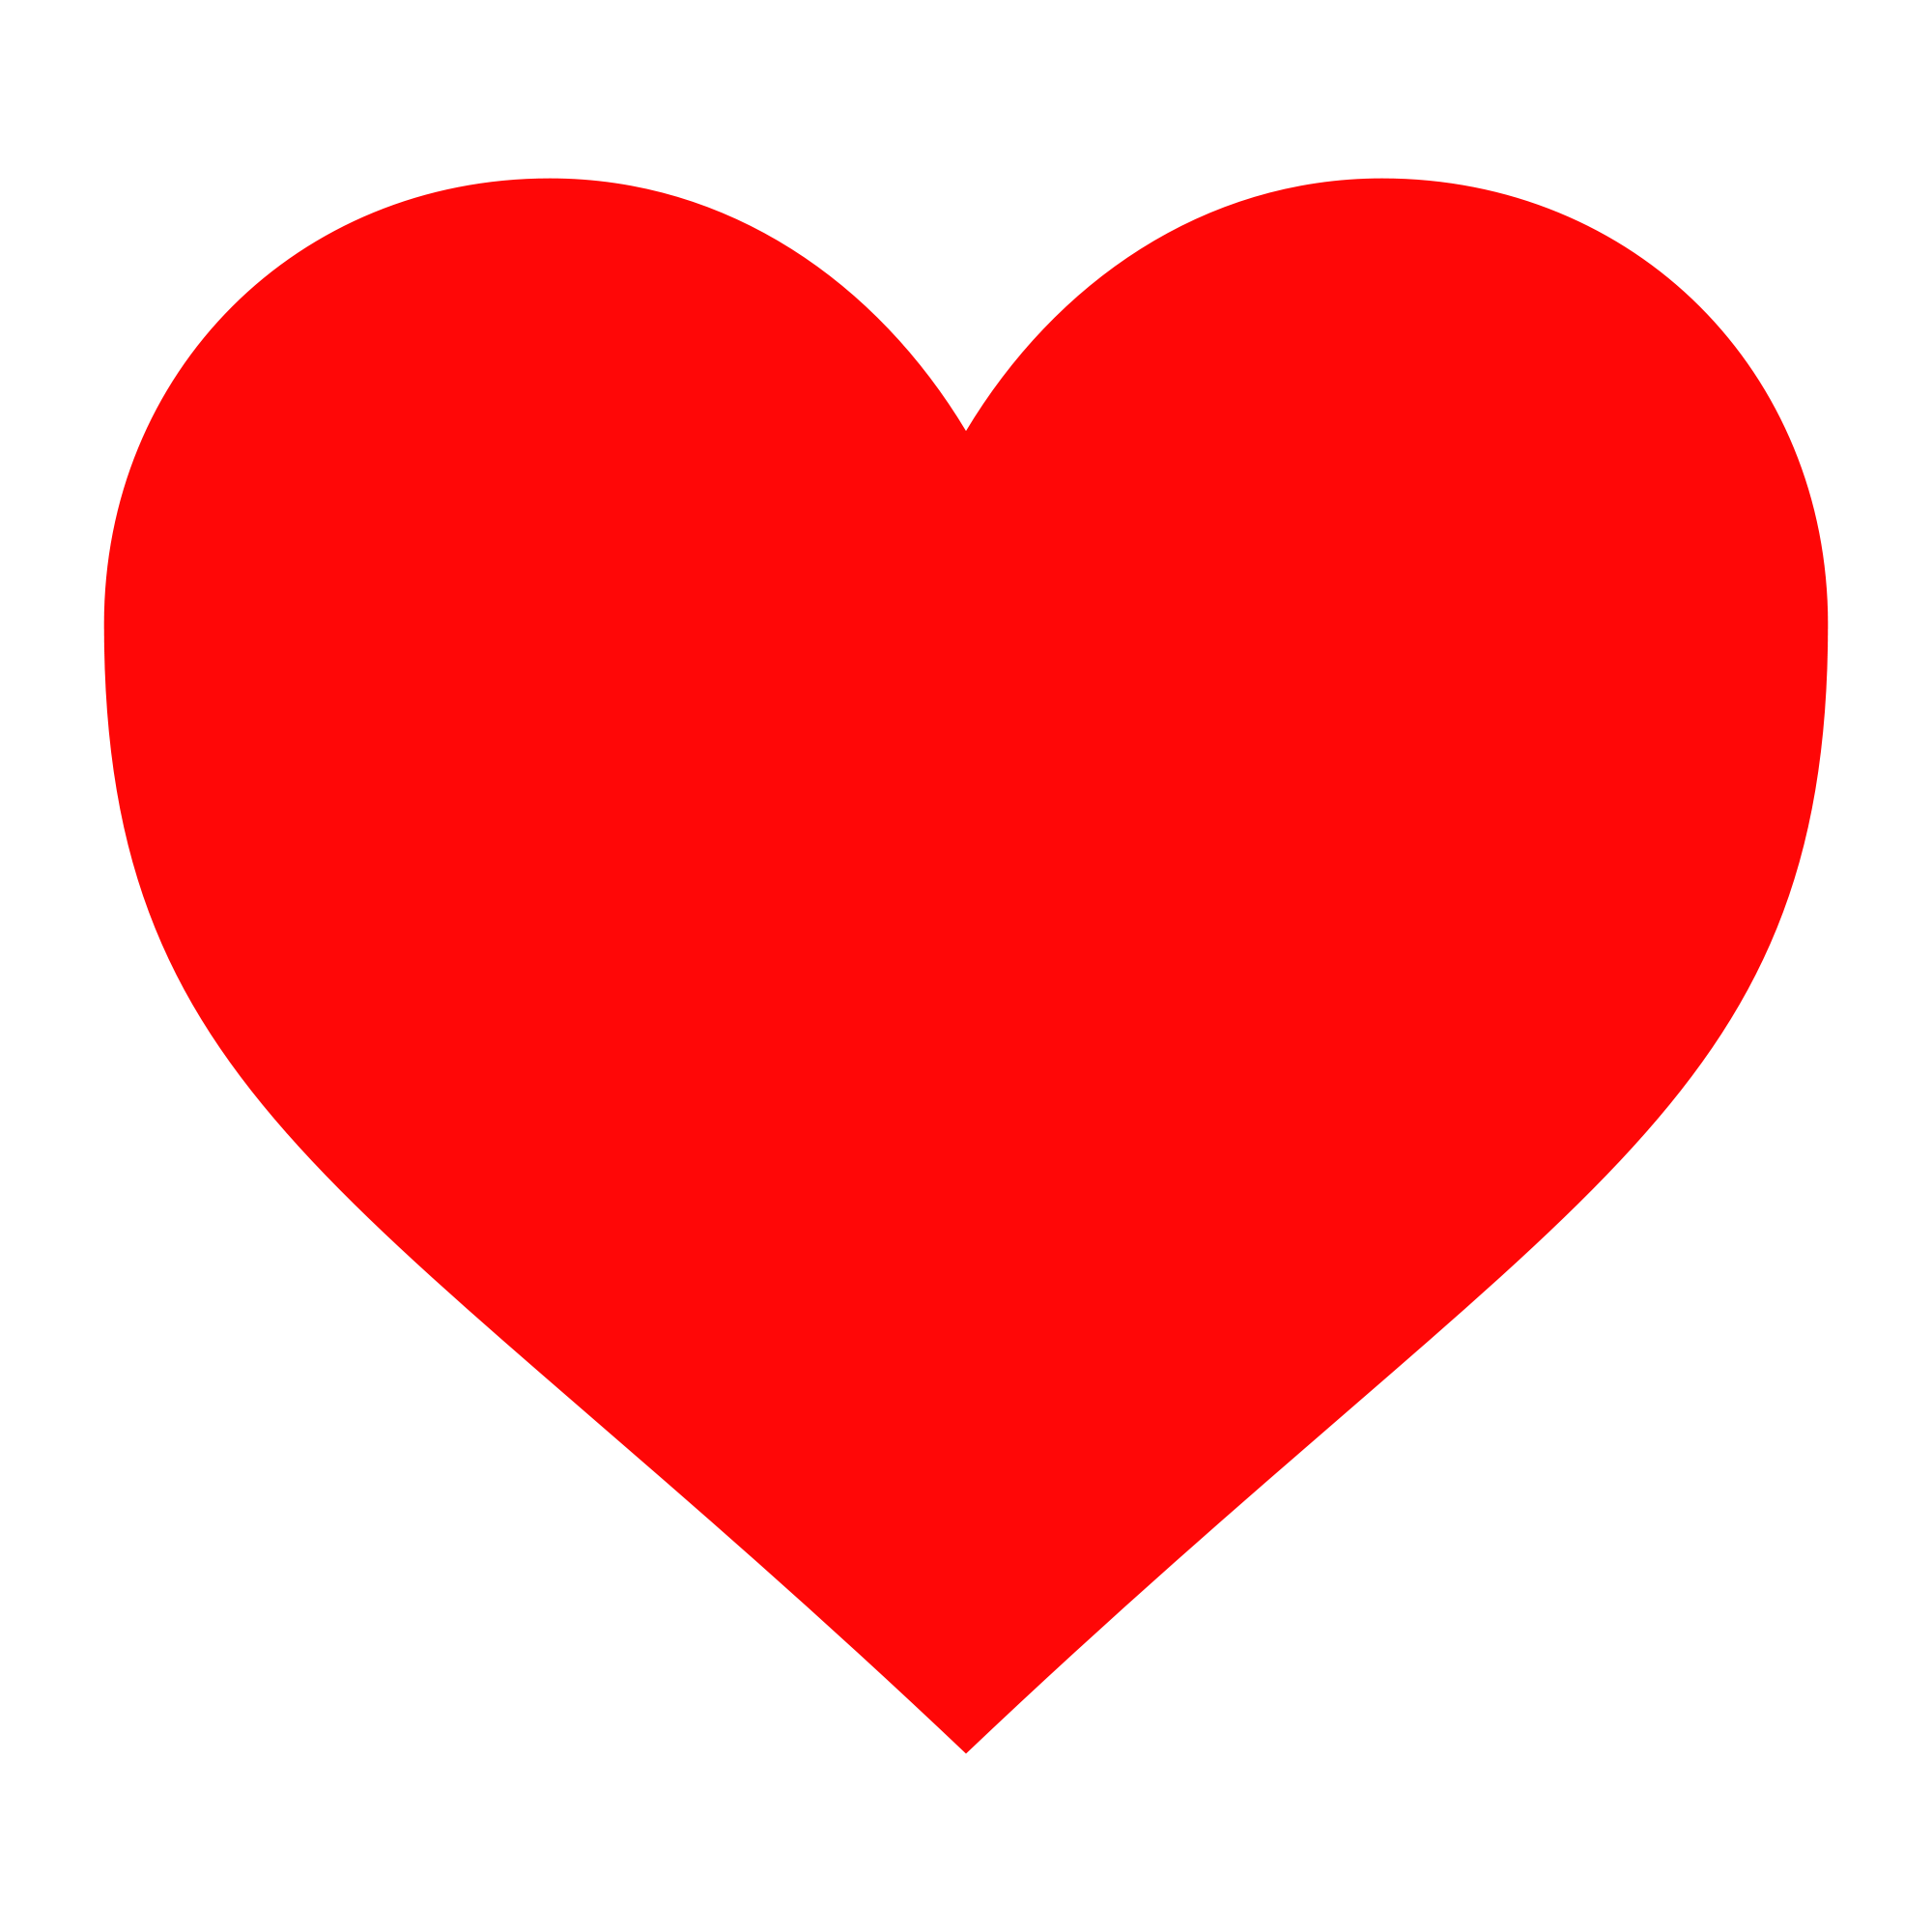 Heart High Quality Background on Wallpapers Vista